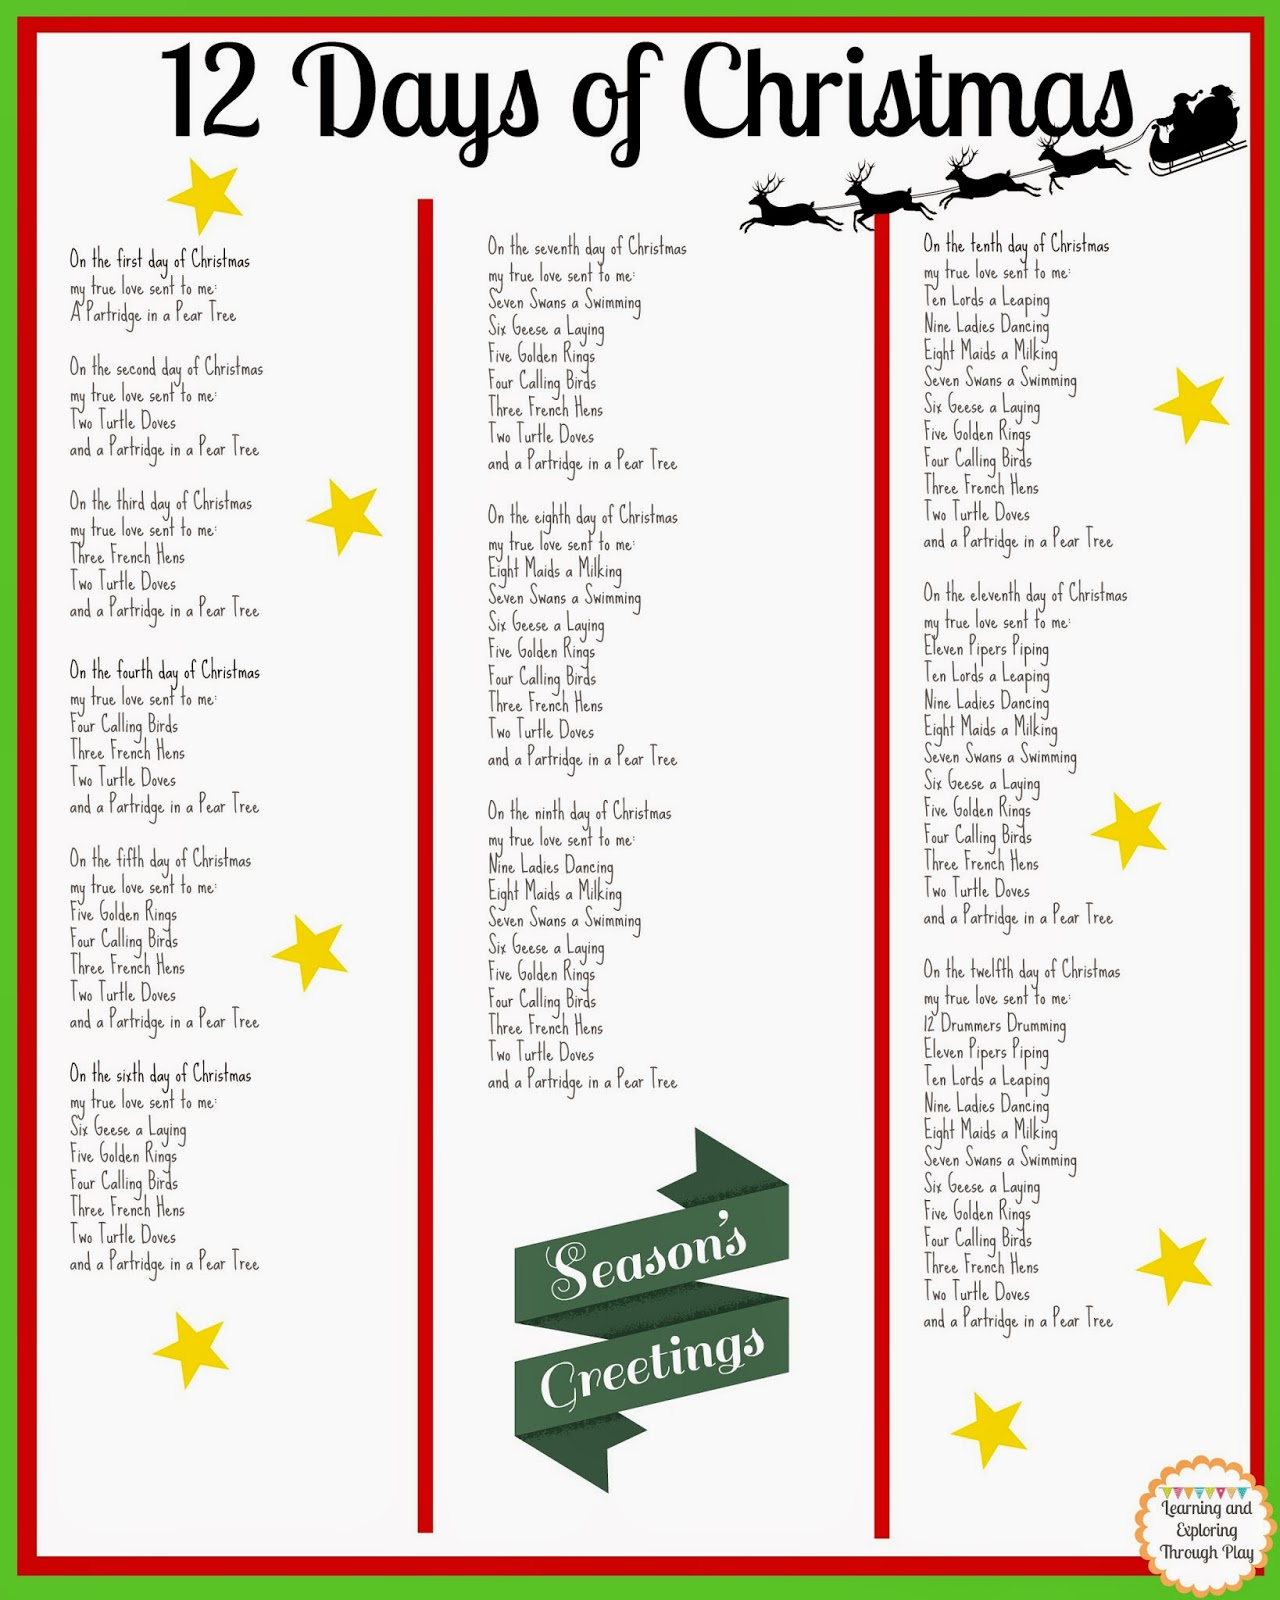 Gallery For Gt 12 Days Of Christmas Lyrics Printable